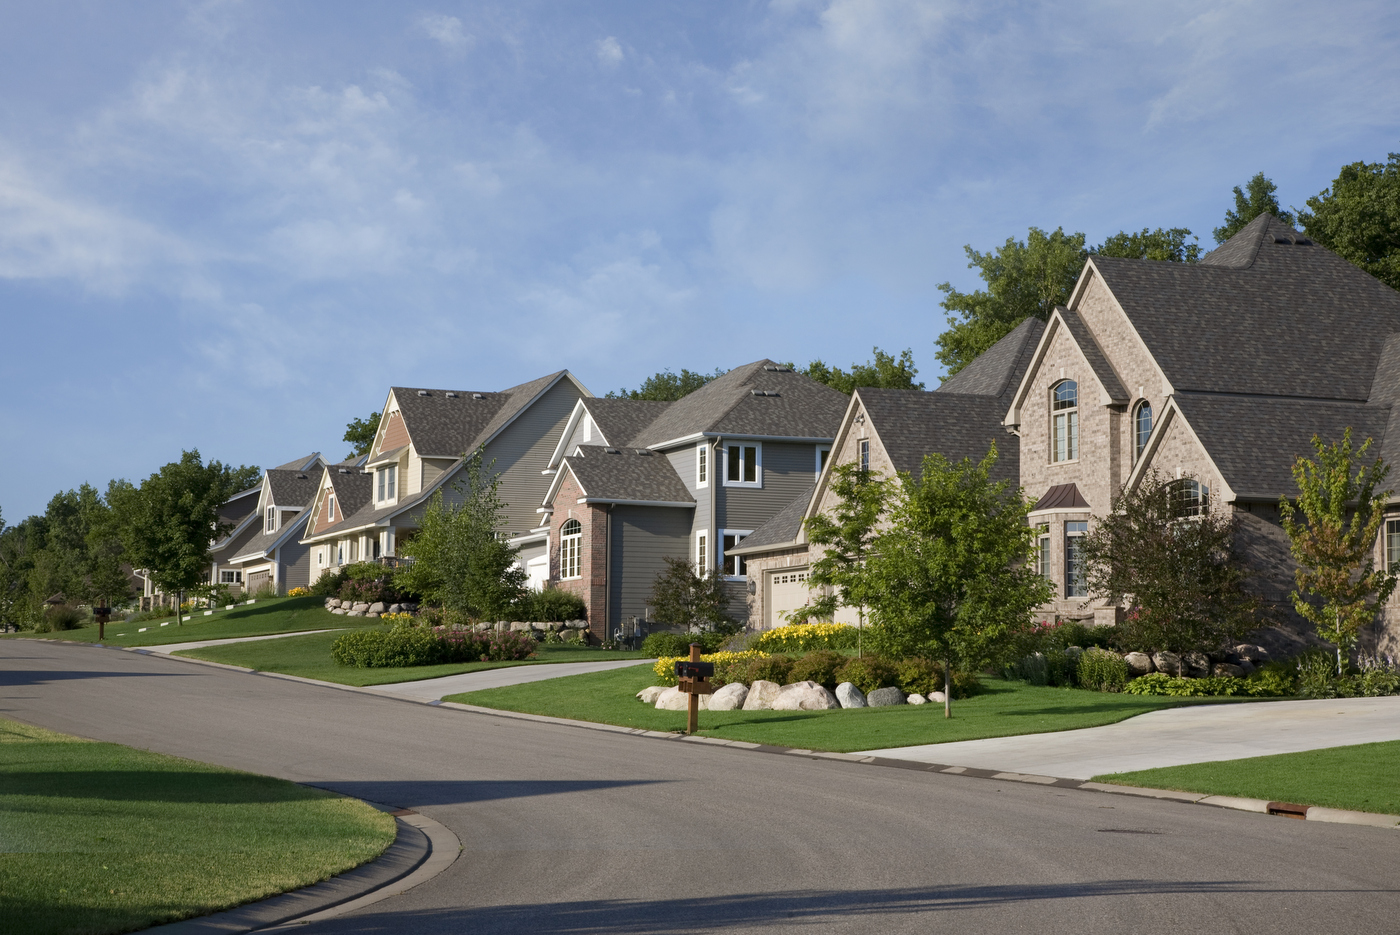 Tips For Buying A New Home - What You Should Know Before Moving Into a New Neighborhood